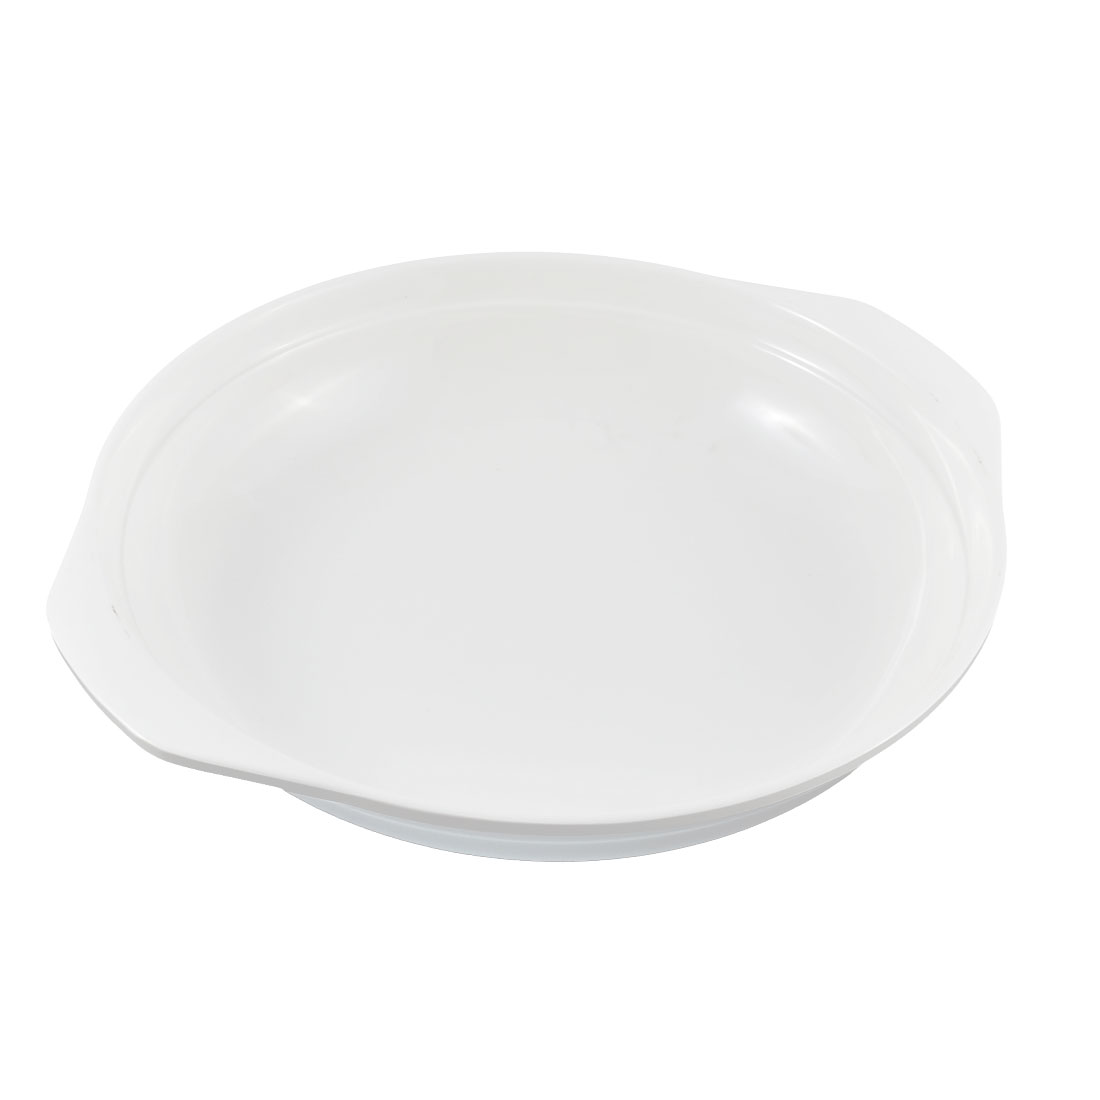 Restaurant Plastic Dual Ear Handle Design Lunch Food Soup Salad Dish Plate White